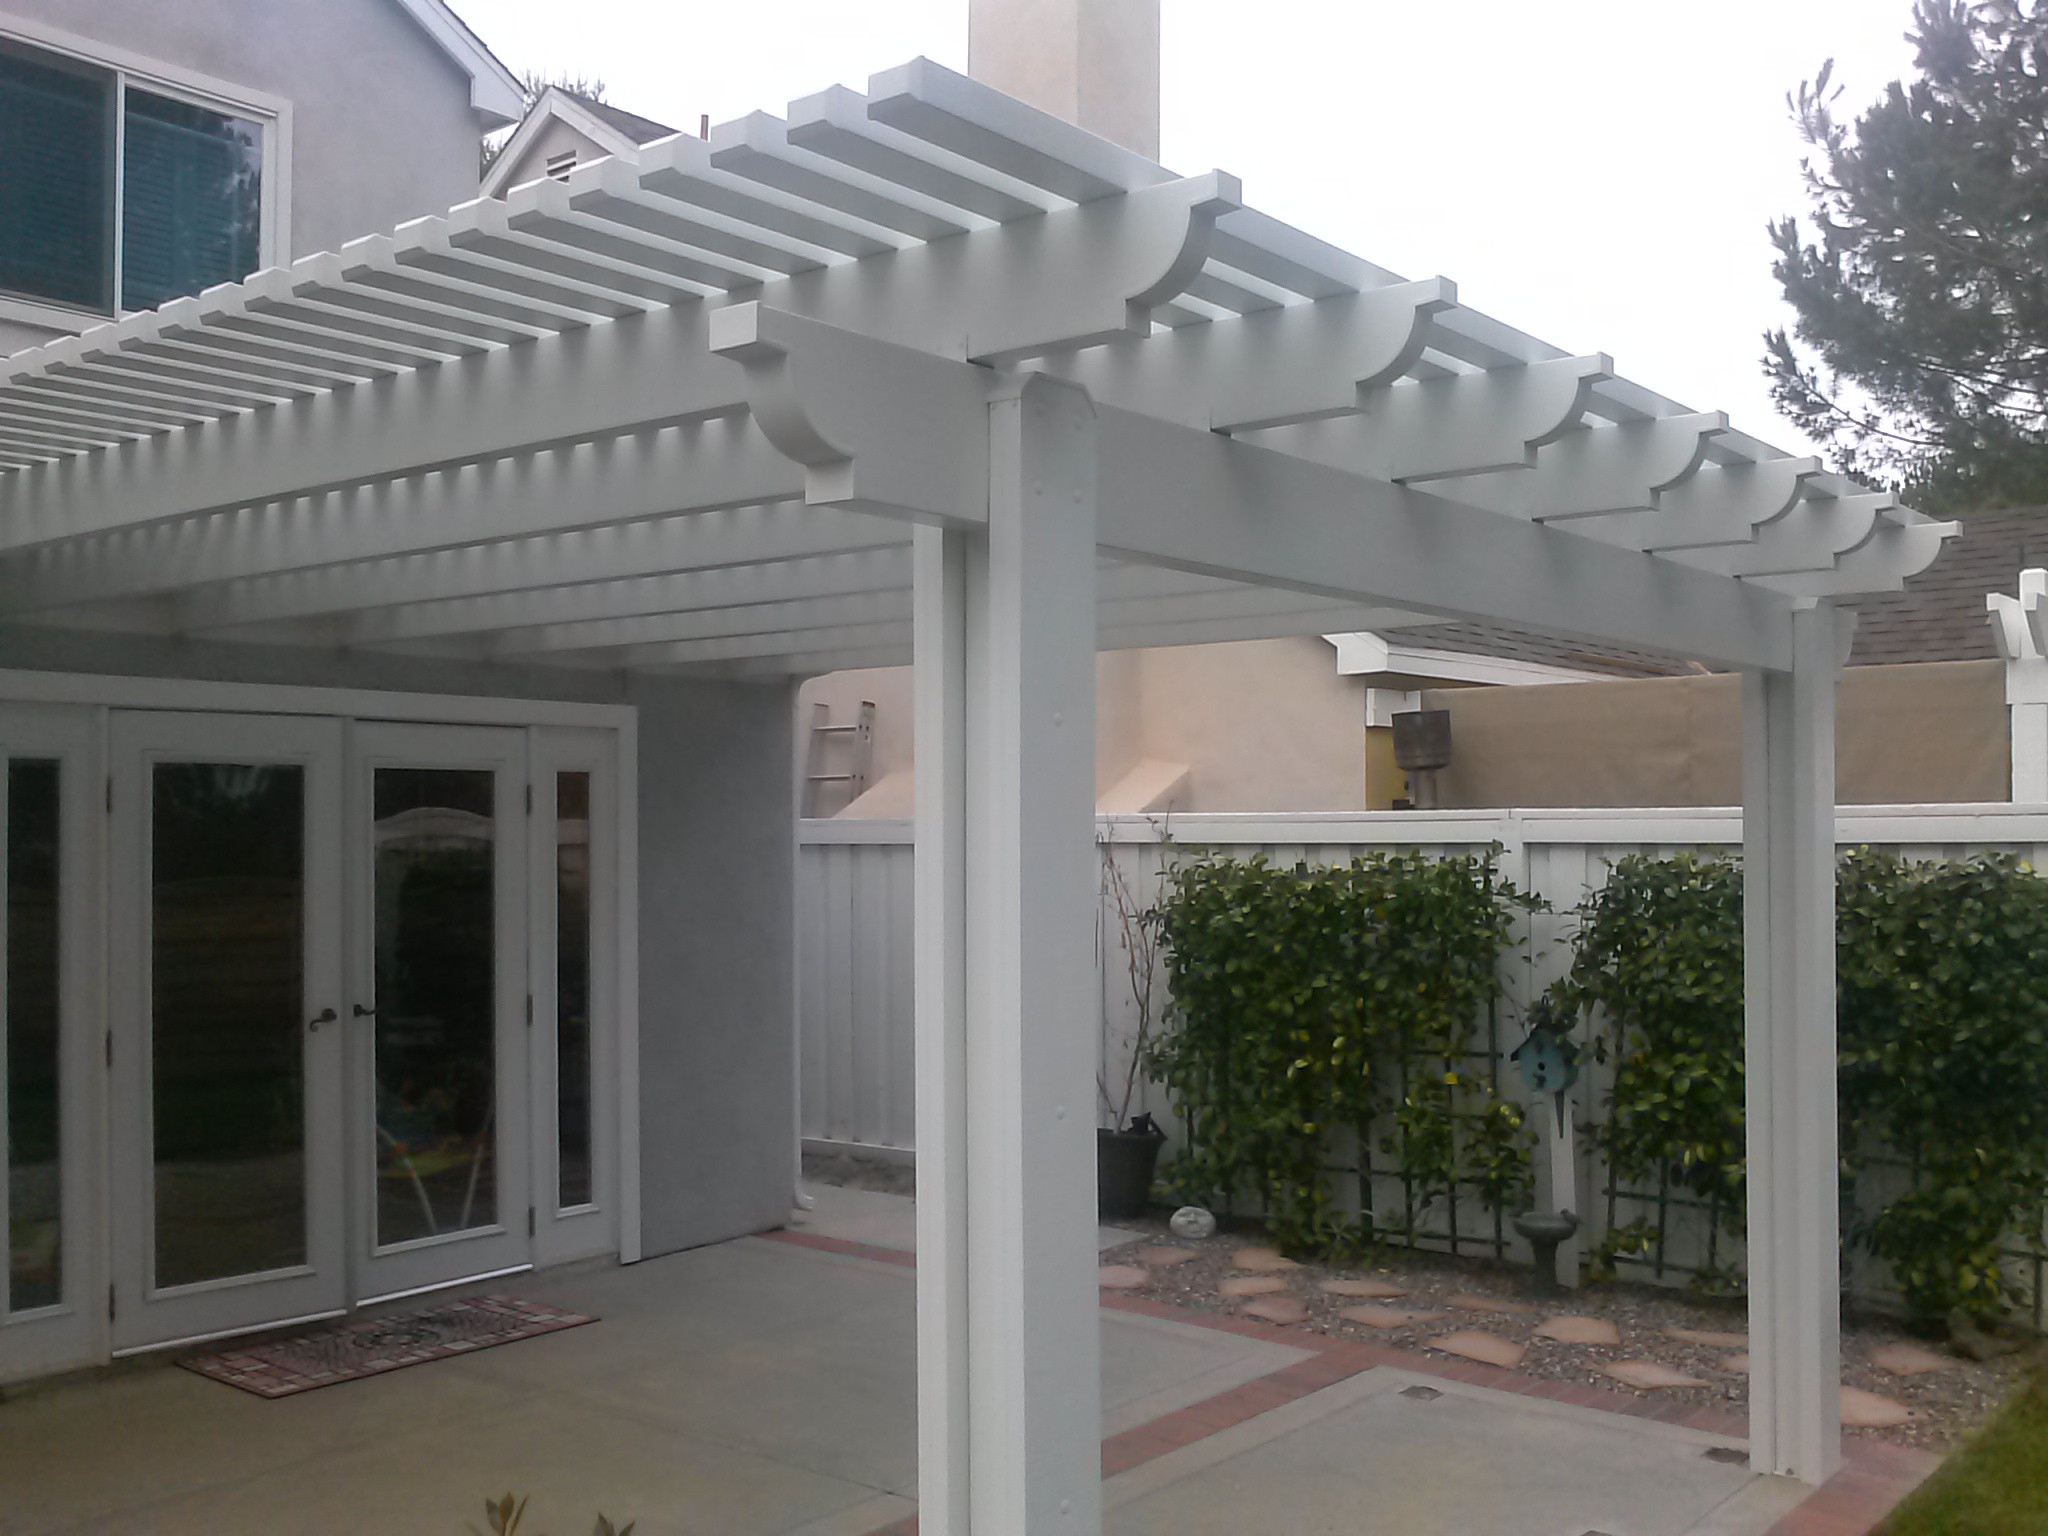 Best ideas about Wood Patio Covers . Save or Pin Orange County Alumawood Patio Covers vs Wood Patio Covers Now.